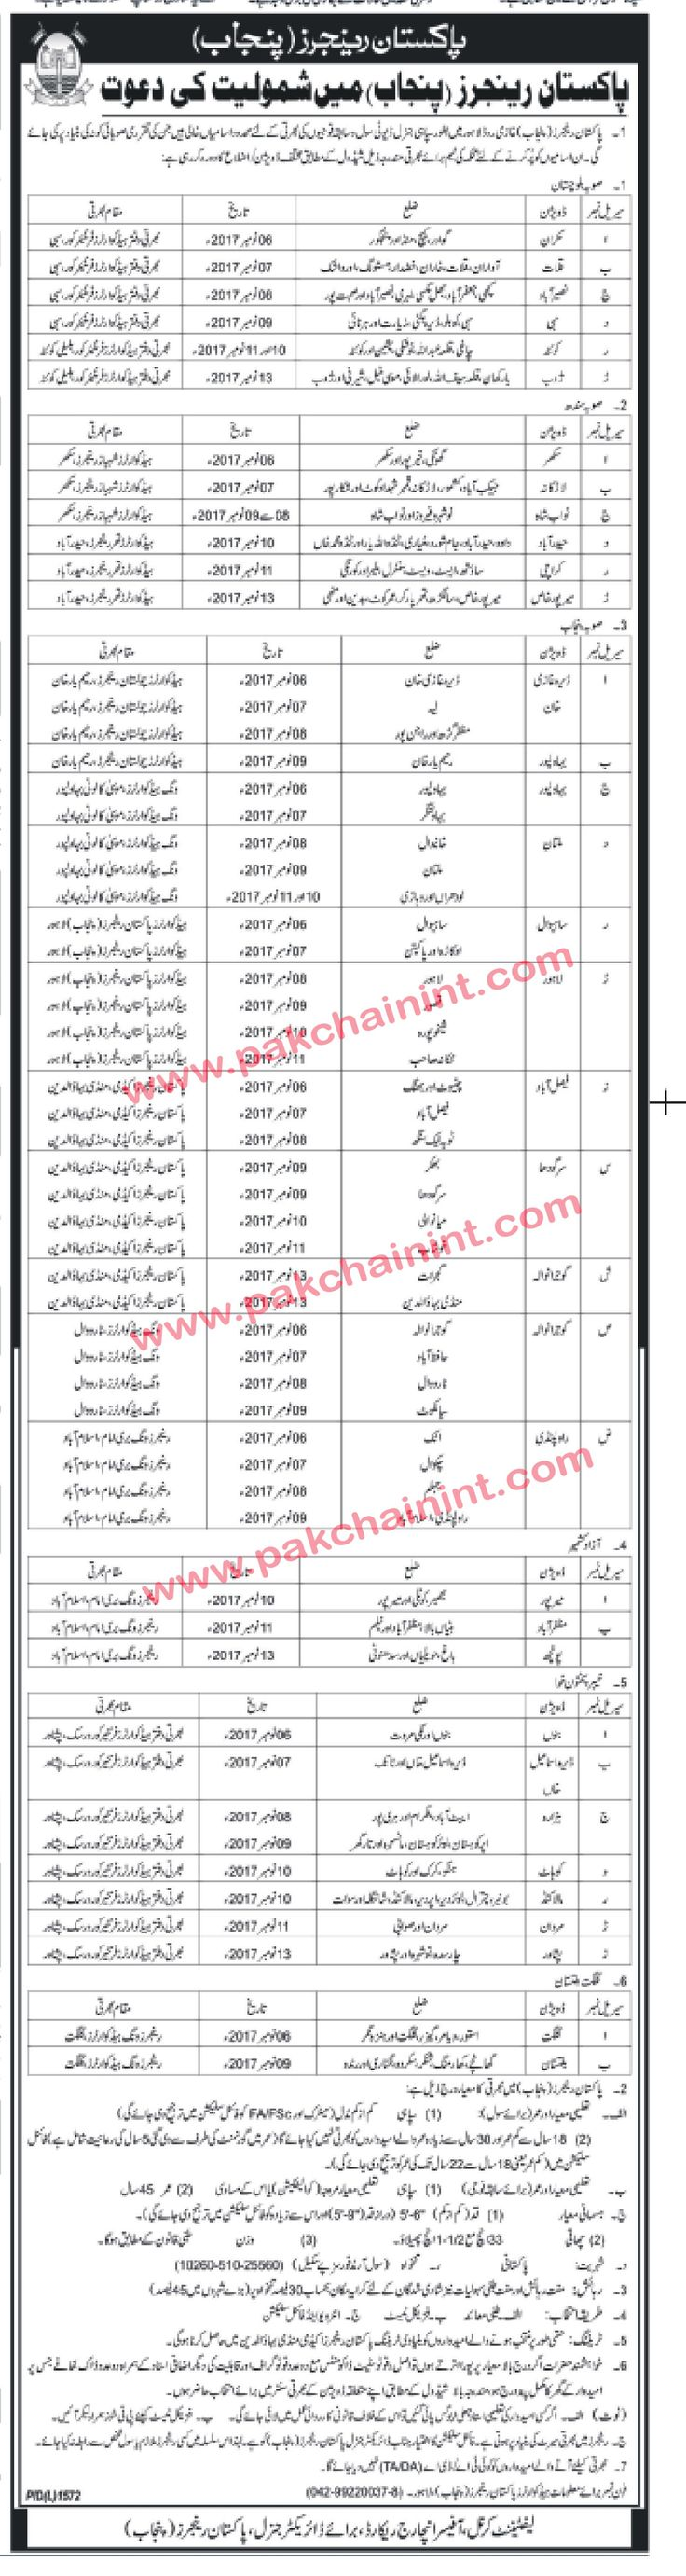 Pakistan ranger punjab jobs opportunity Advertisment date is 28 October 2017    ads.by   Click to see full view   ads.by   #Advertisement #Authority #Bureau #Computer Operator #GOVERNMENT OF THE PUNJAB #Jobs #jobs 2017 #NTS #opportunity #Pakistan #Punjab #ranger